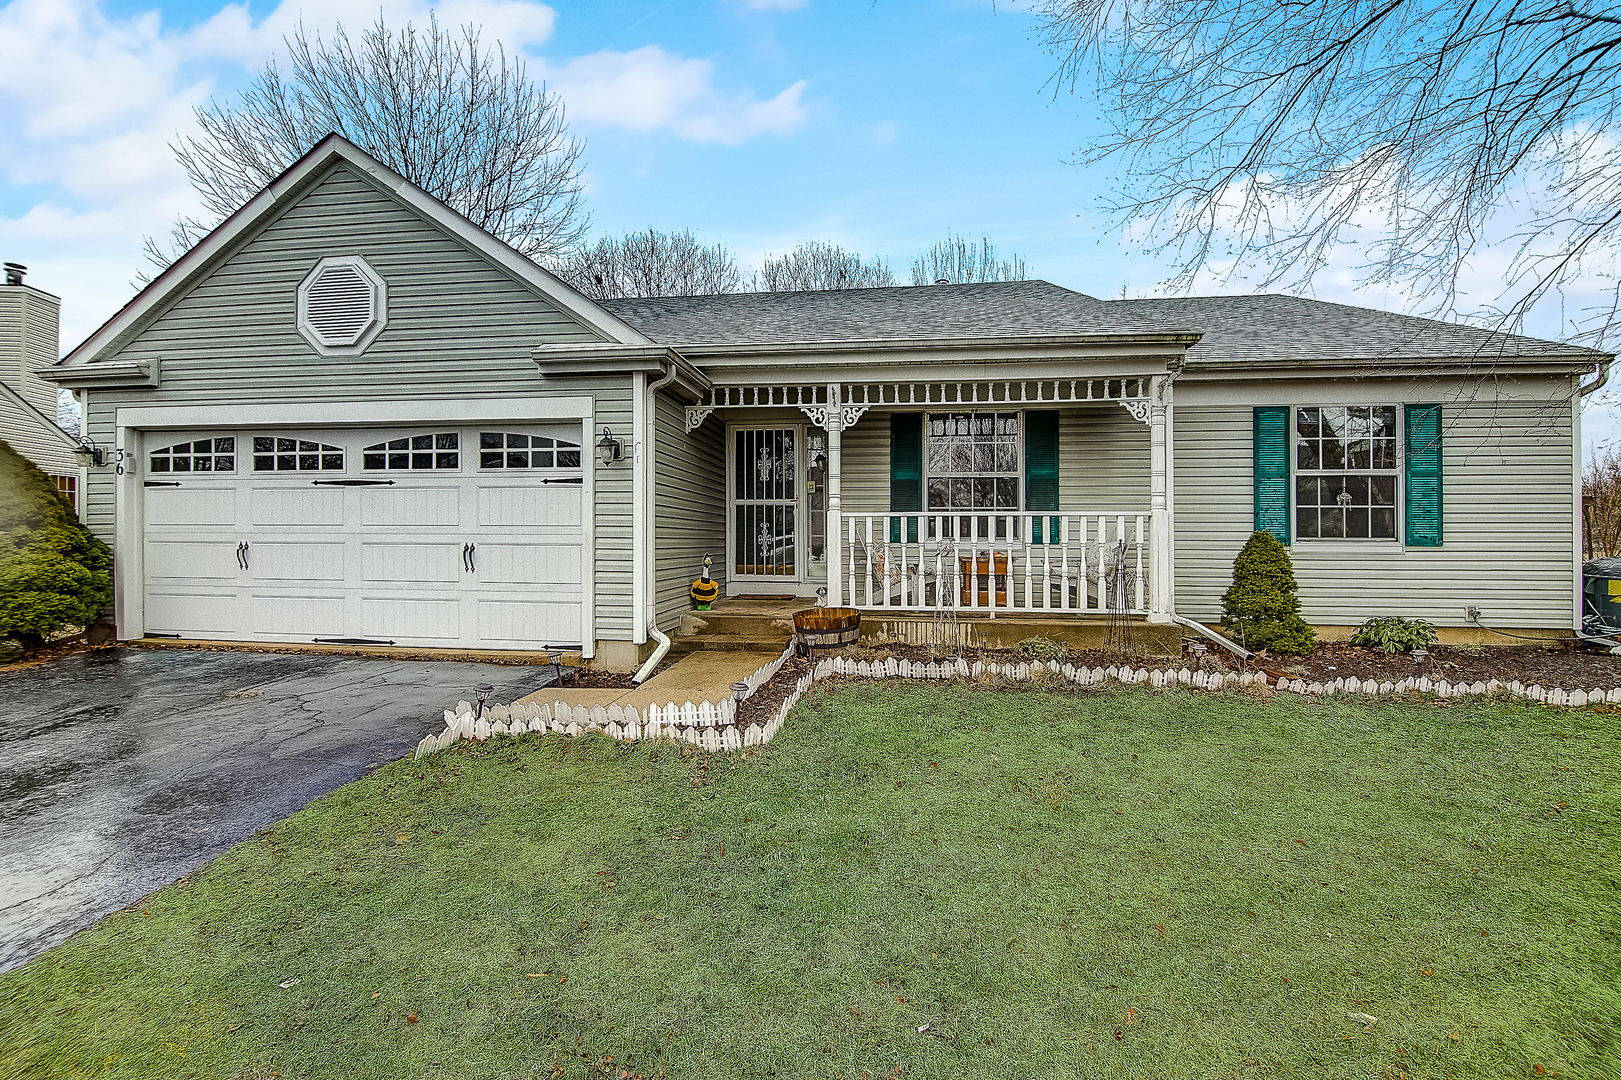 36 Mckinley Lane, Streamwood, Illinois